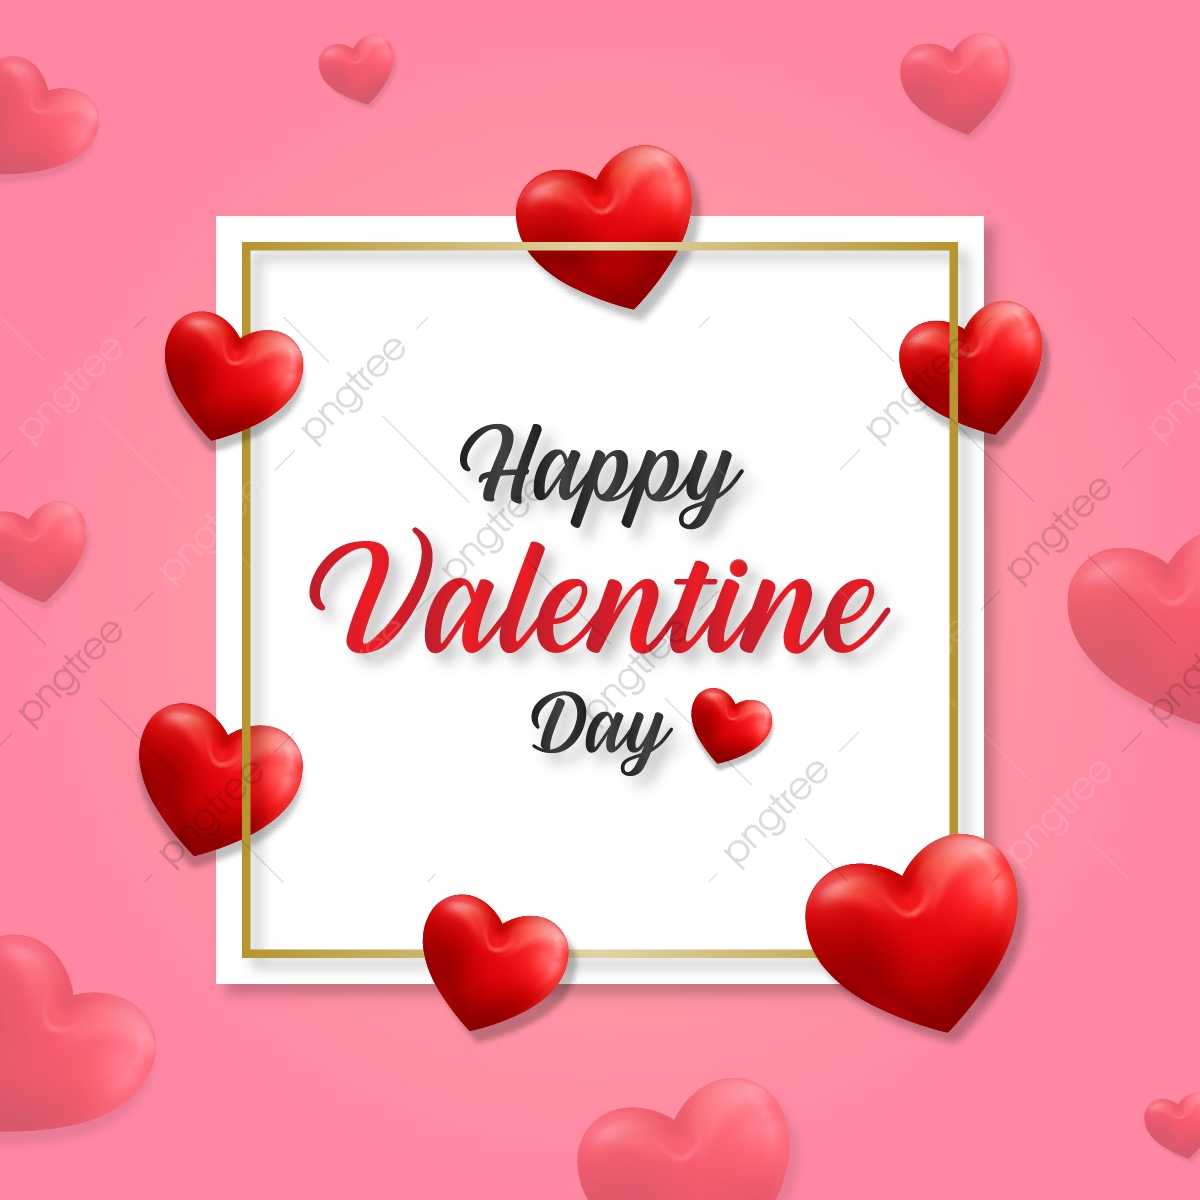 pngtree happy valentine day heart frame with classic heart background png image